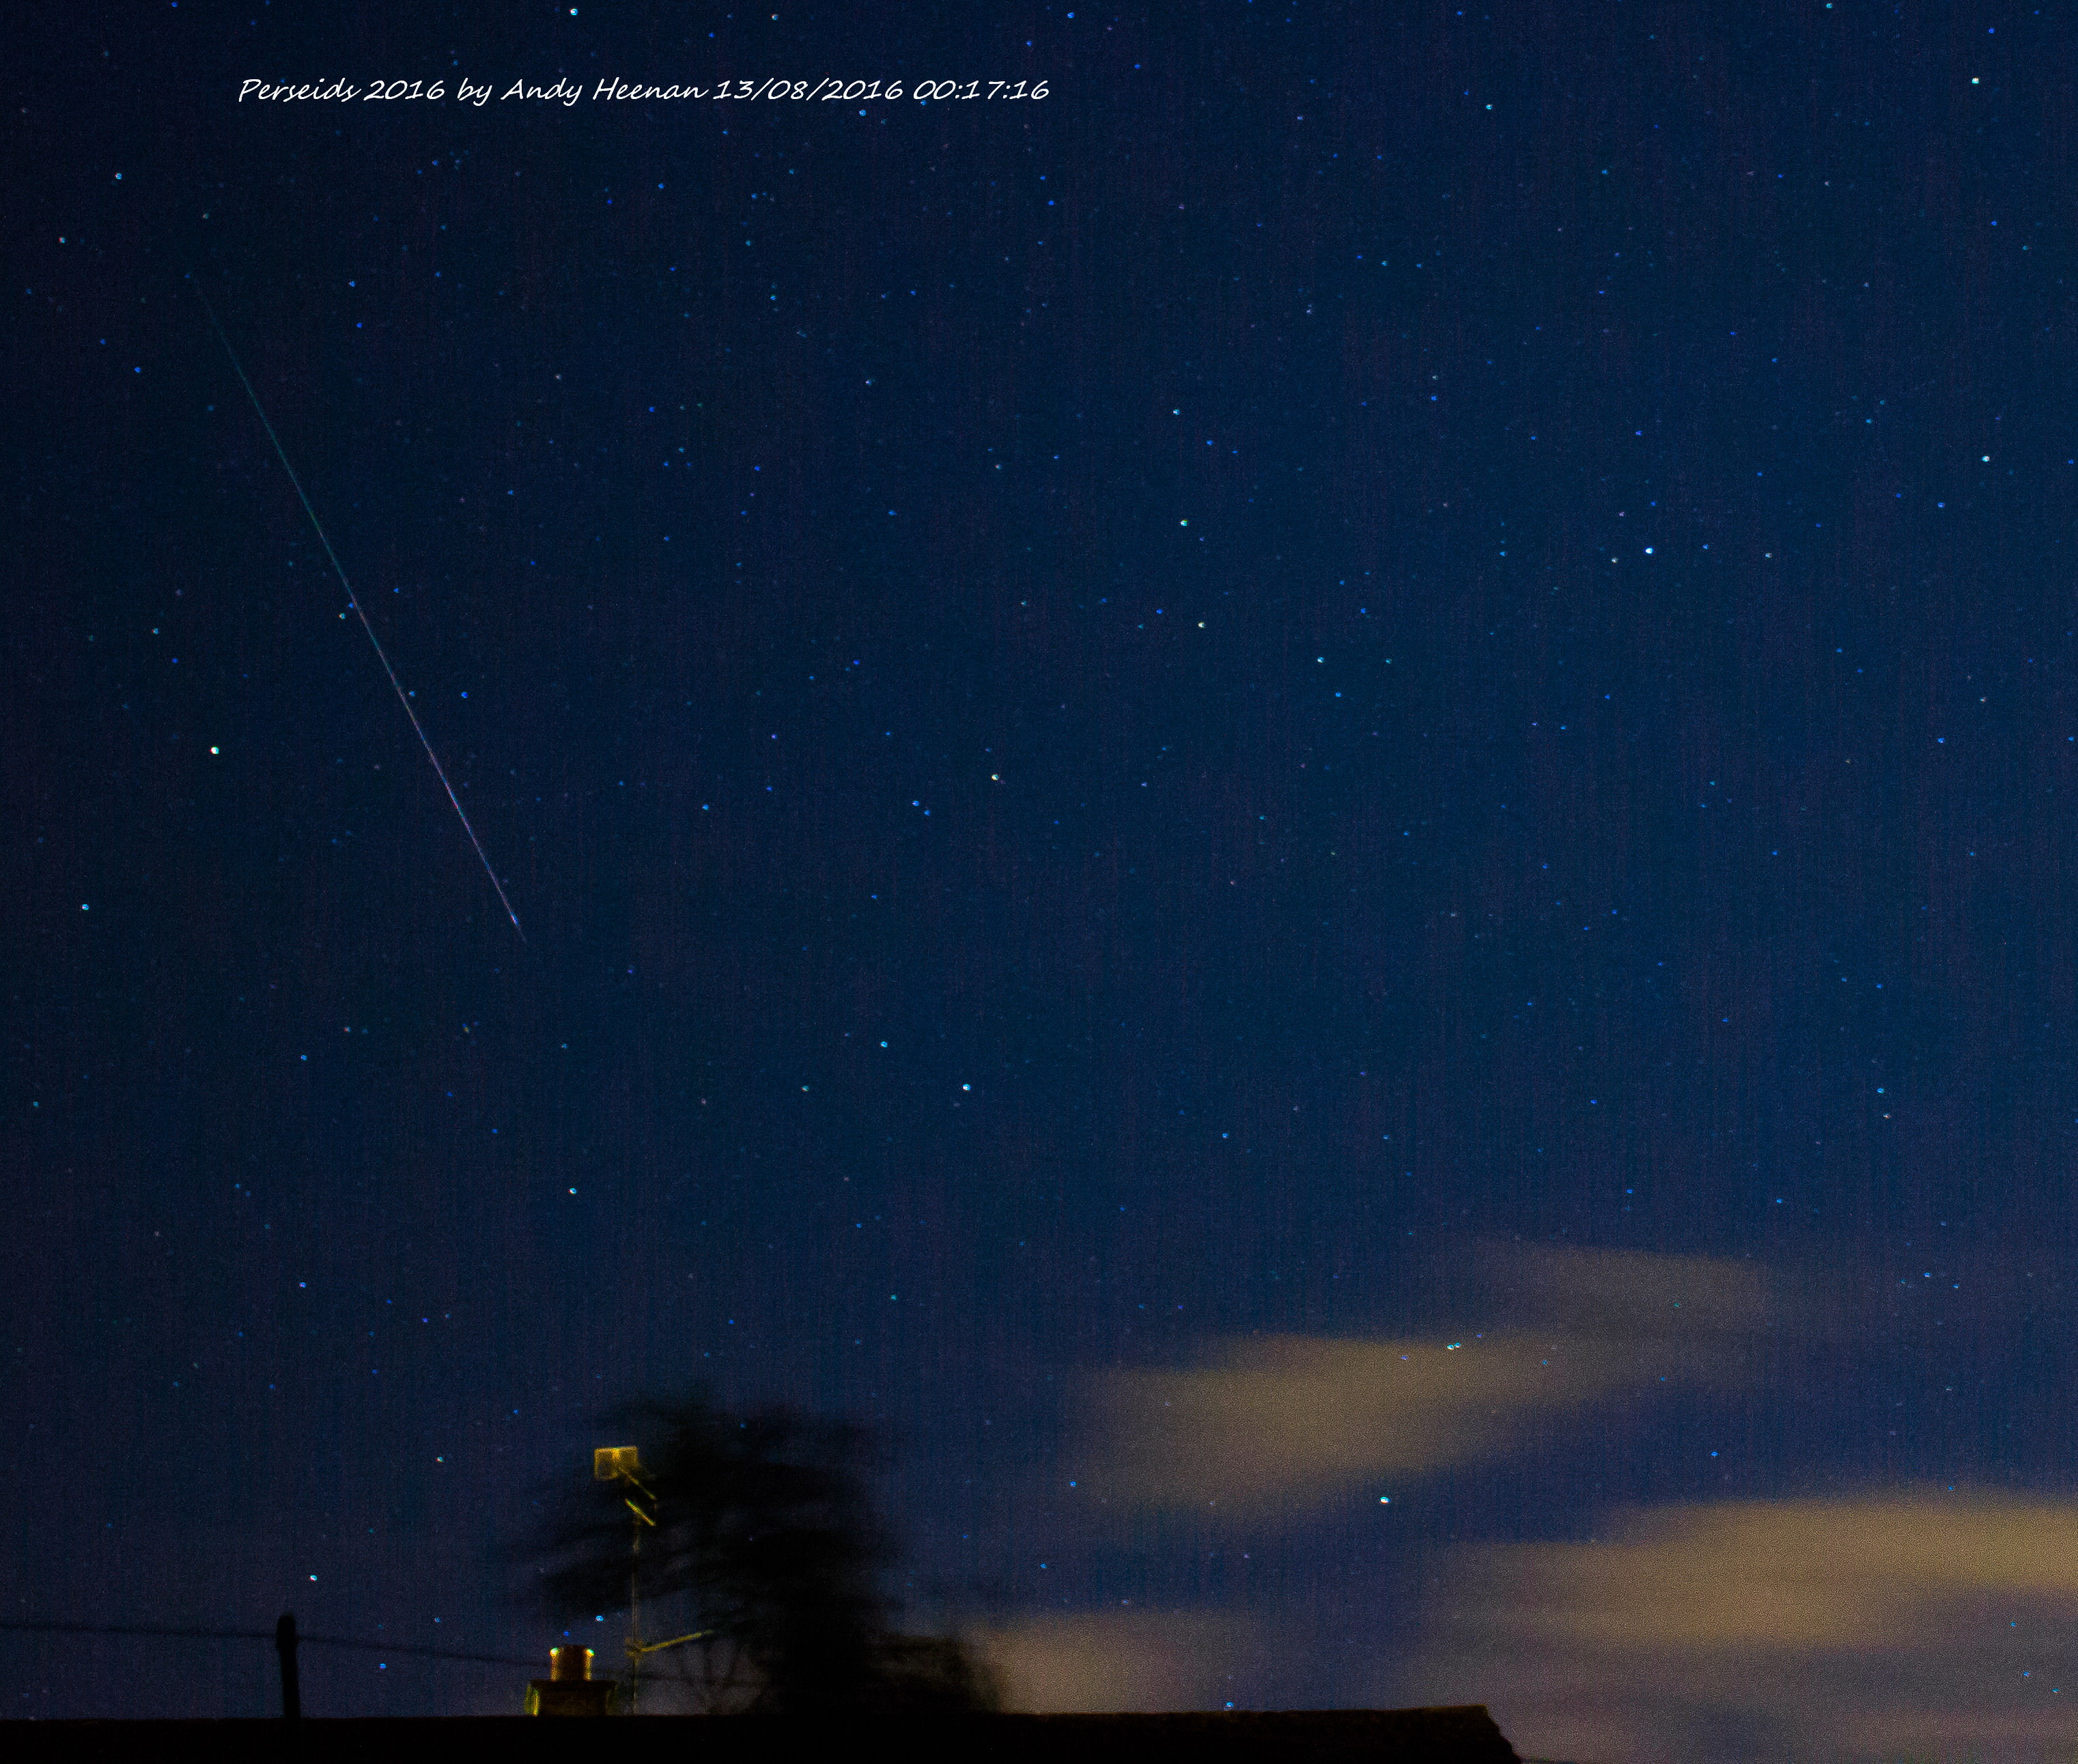 Perseid Meteor by Andy Heenan 13th August 00.17.26am. Canon EOS 600D, f/4:  10 sec exposure